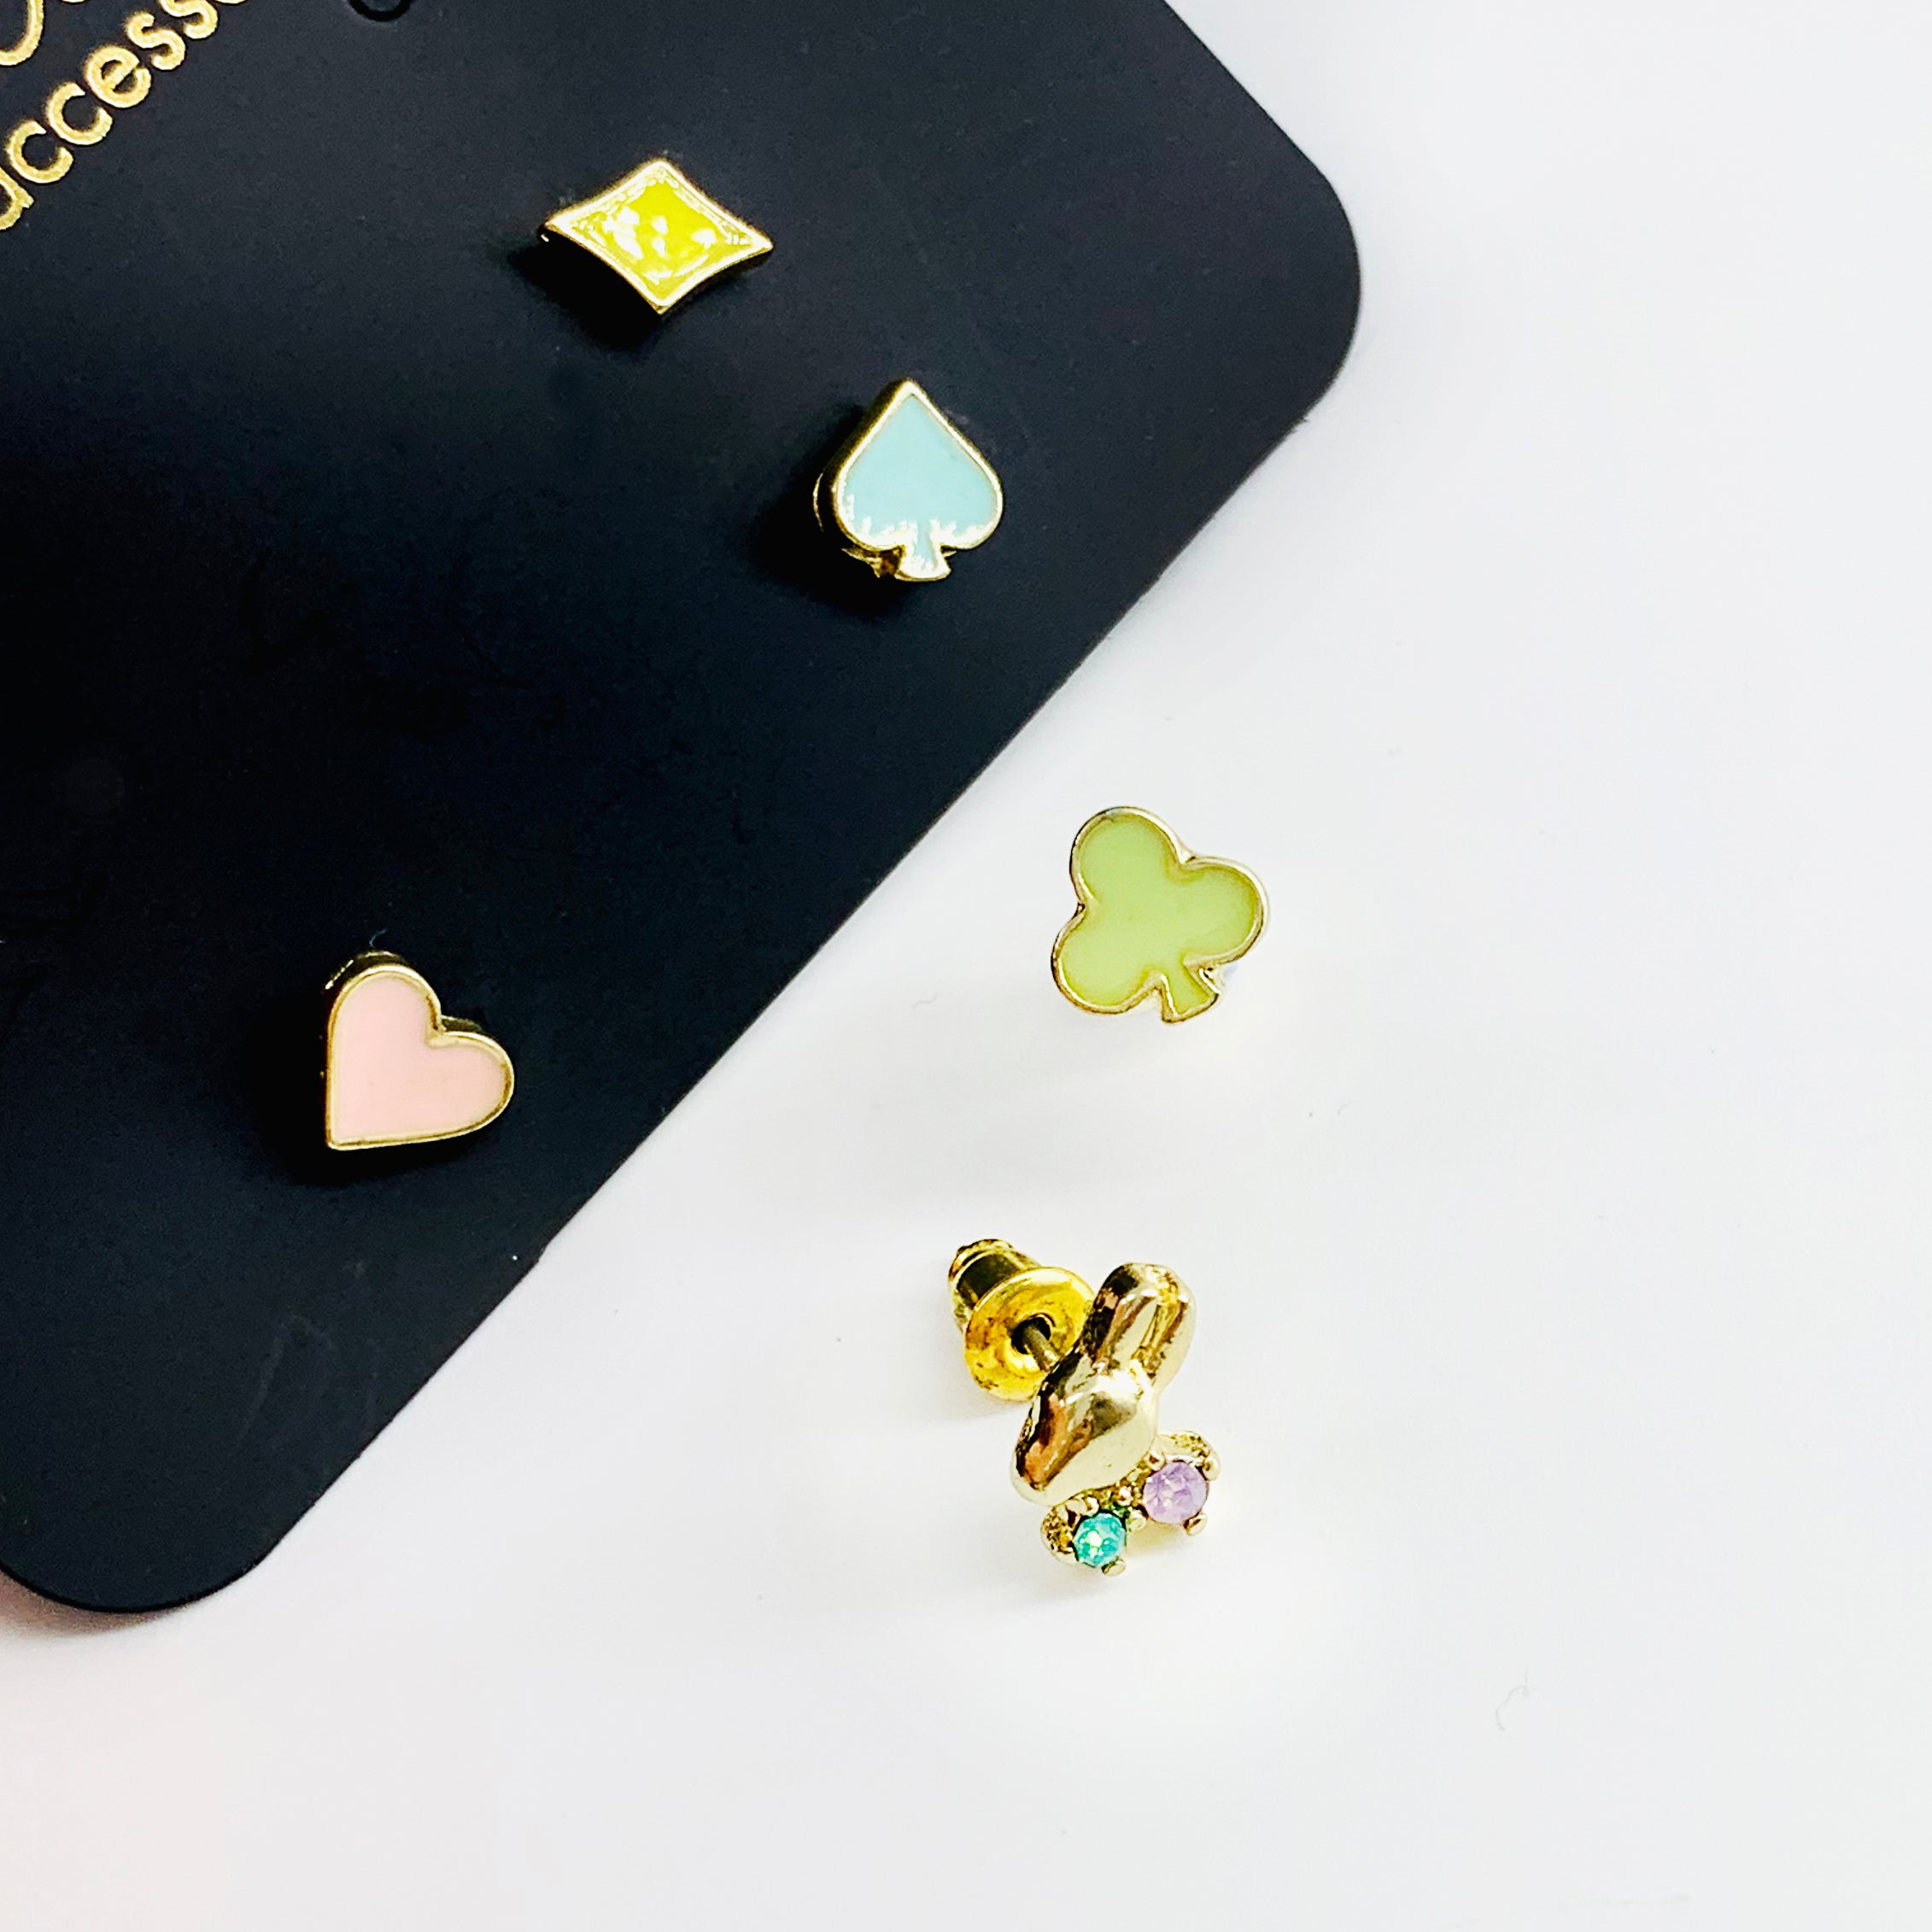 Rabbit, aces, spades pastel-coloured stud earrings